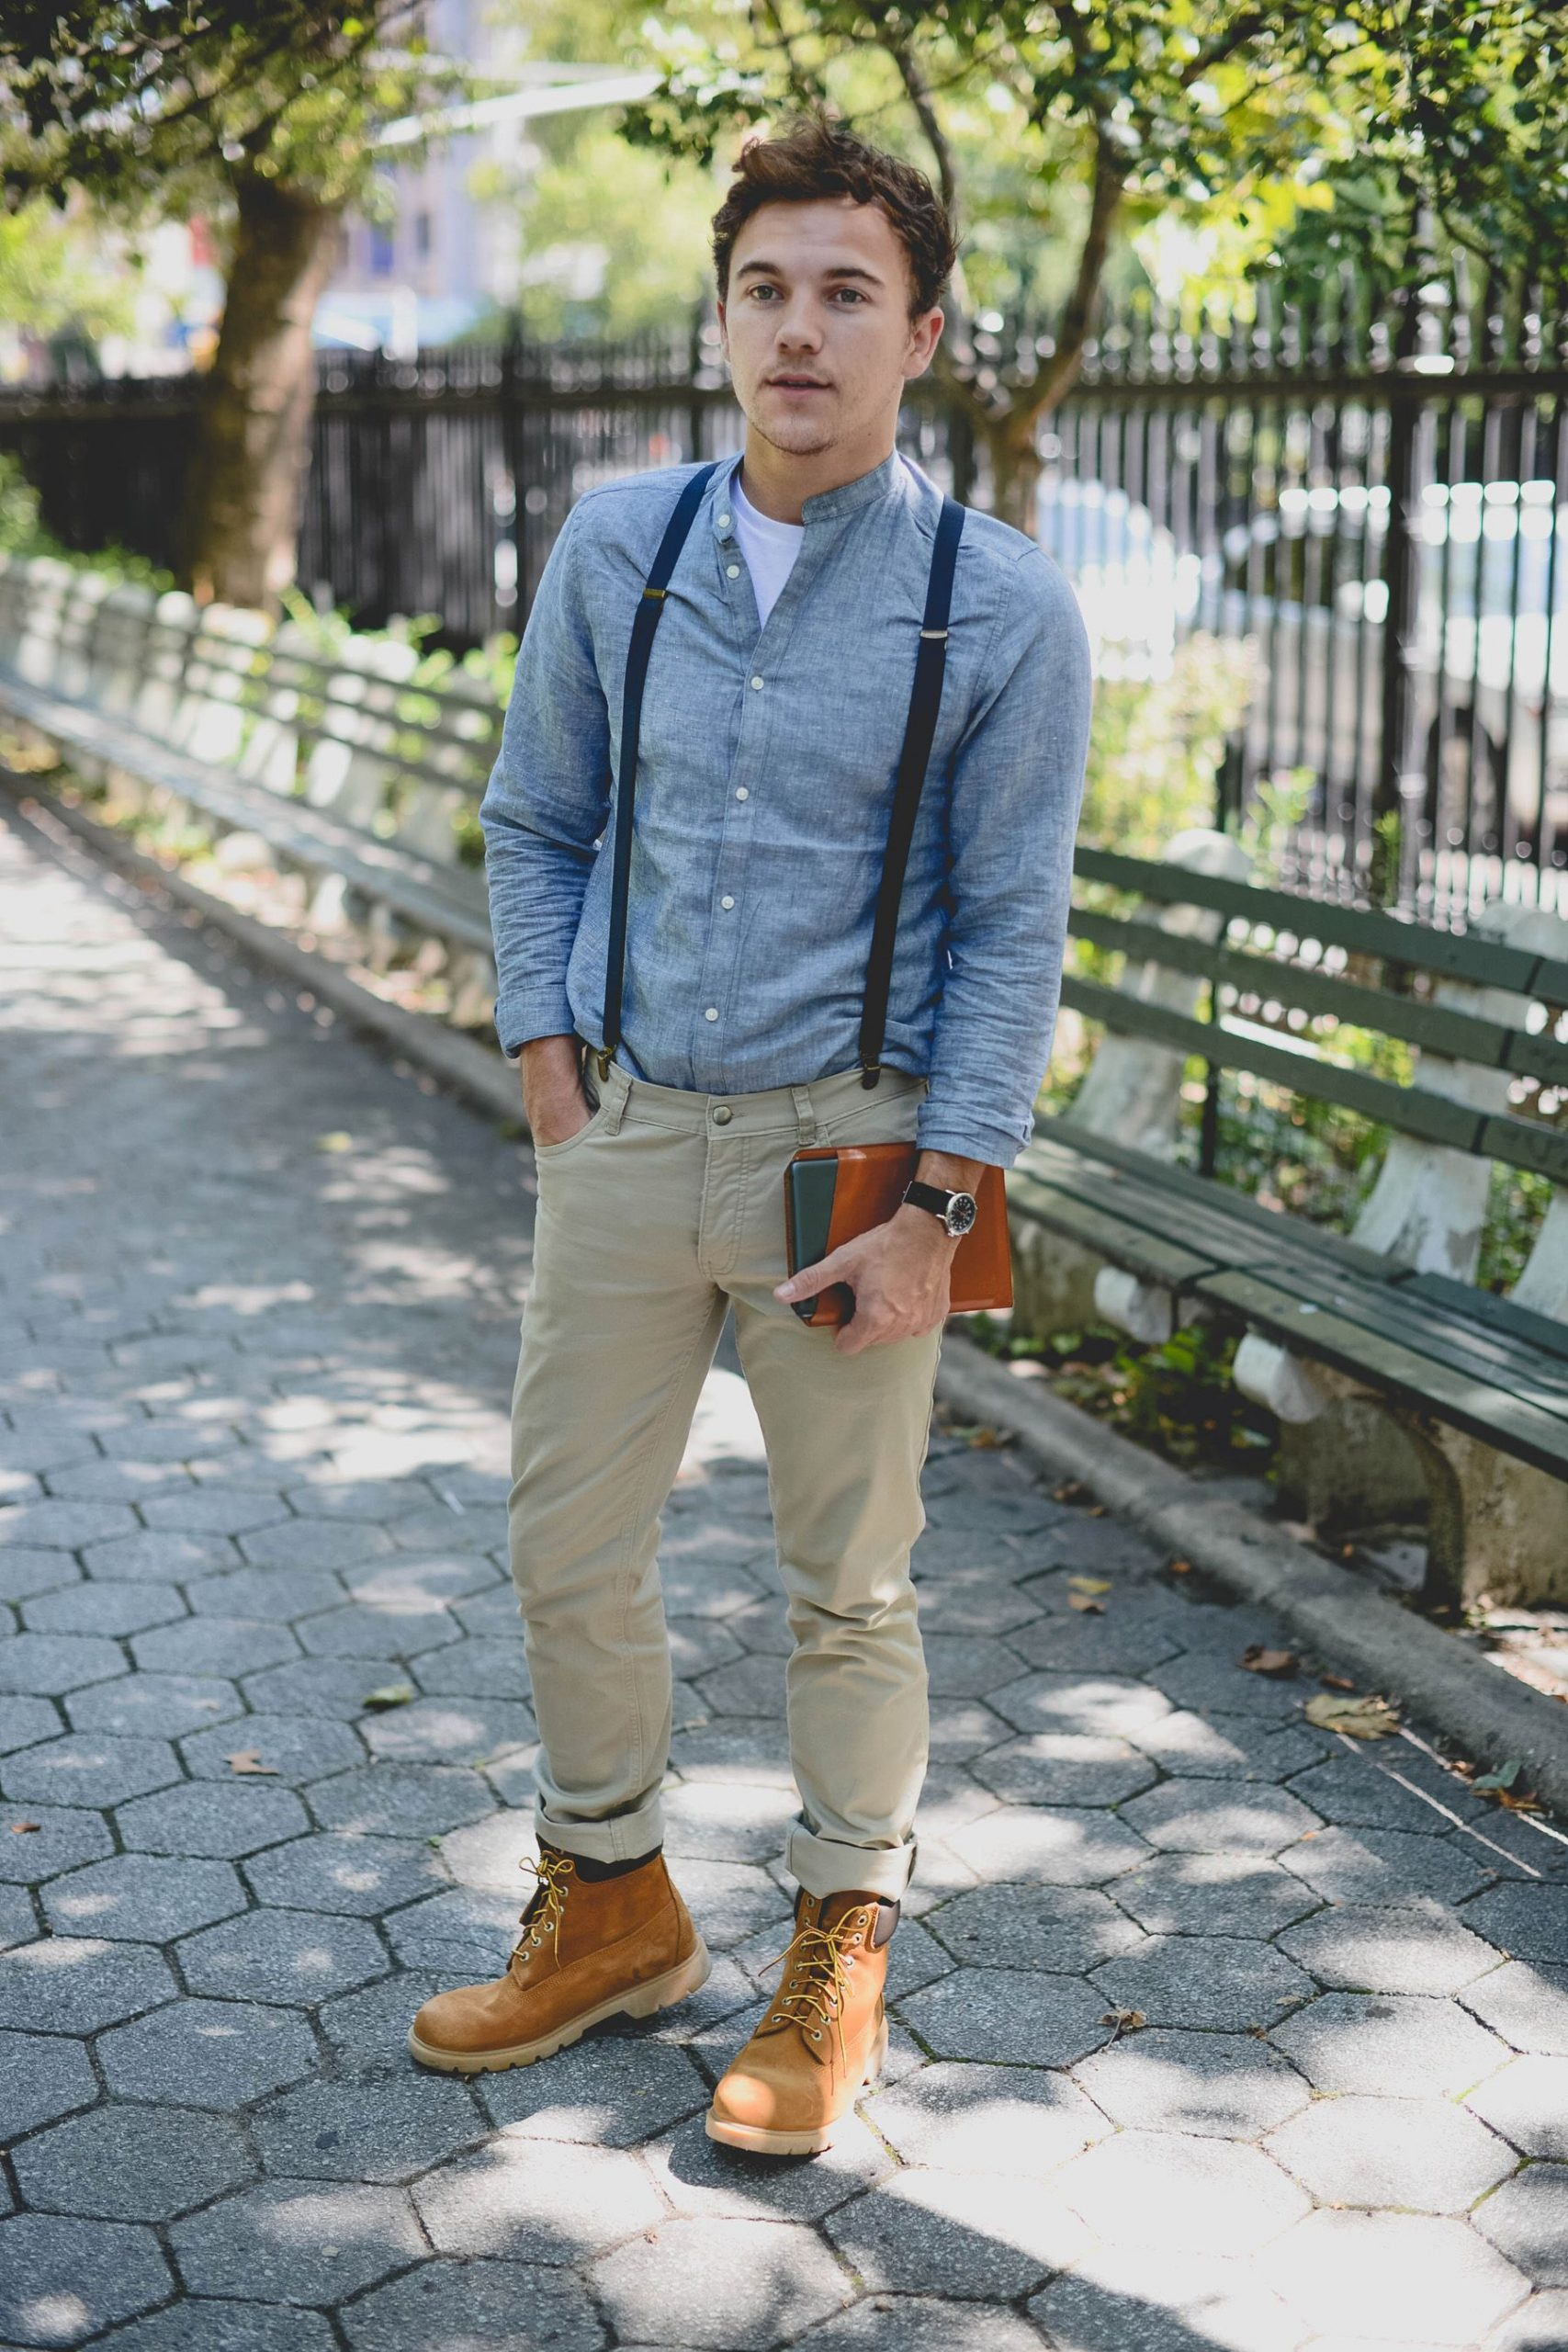 White Tee, Suspenders, Jeans And Boots